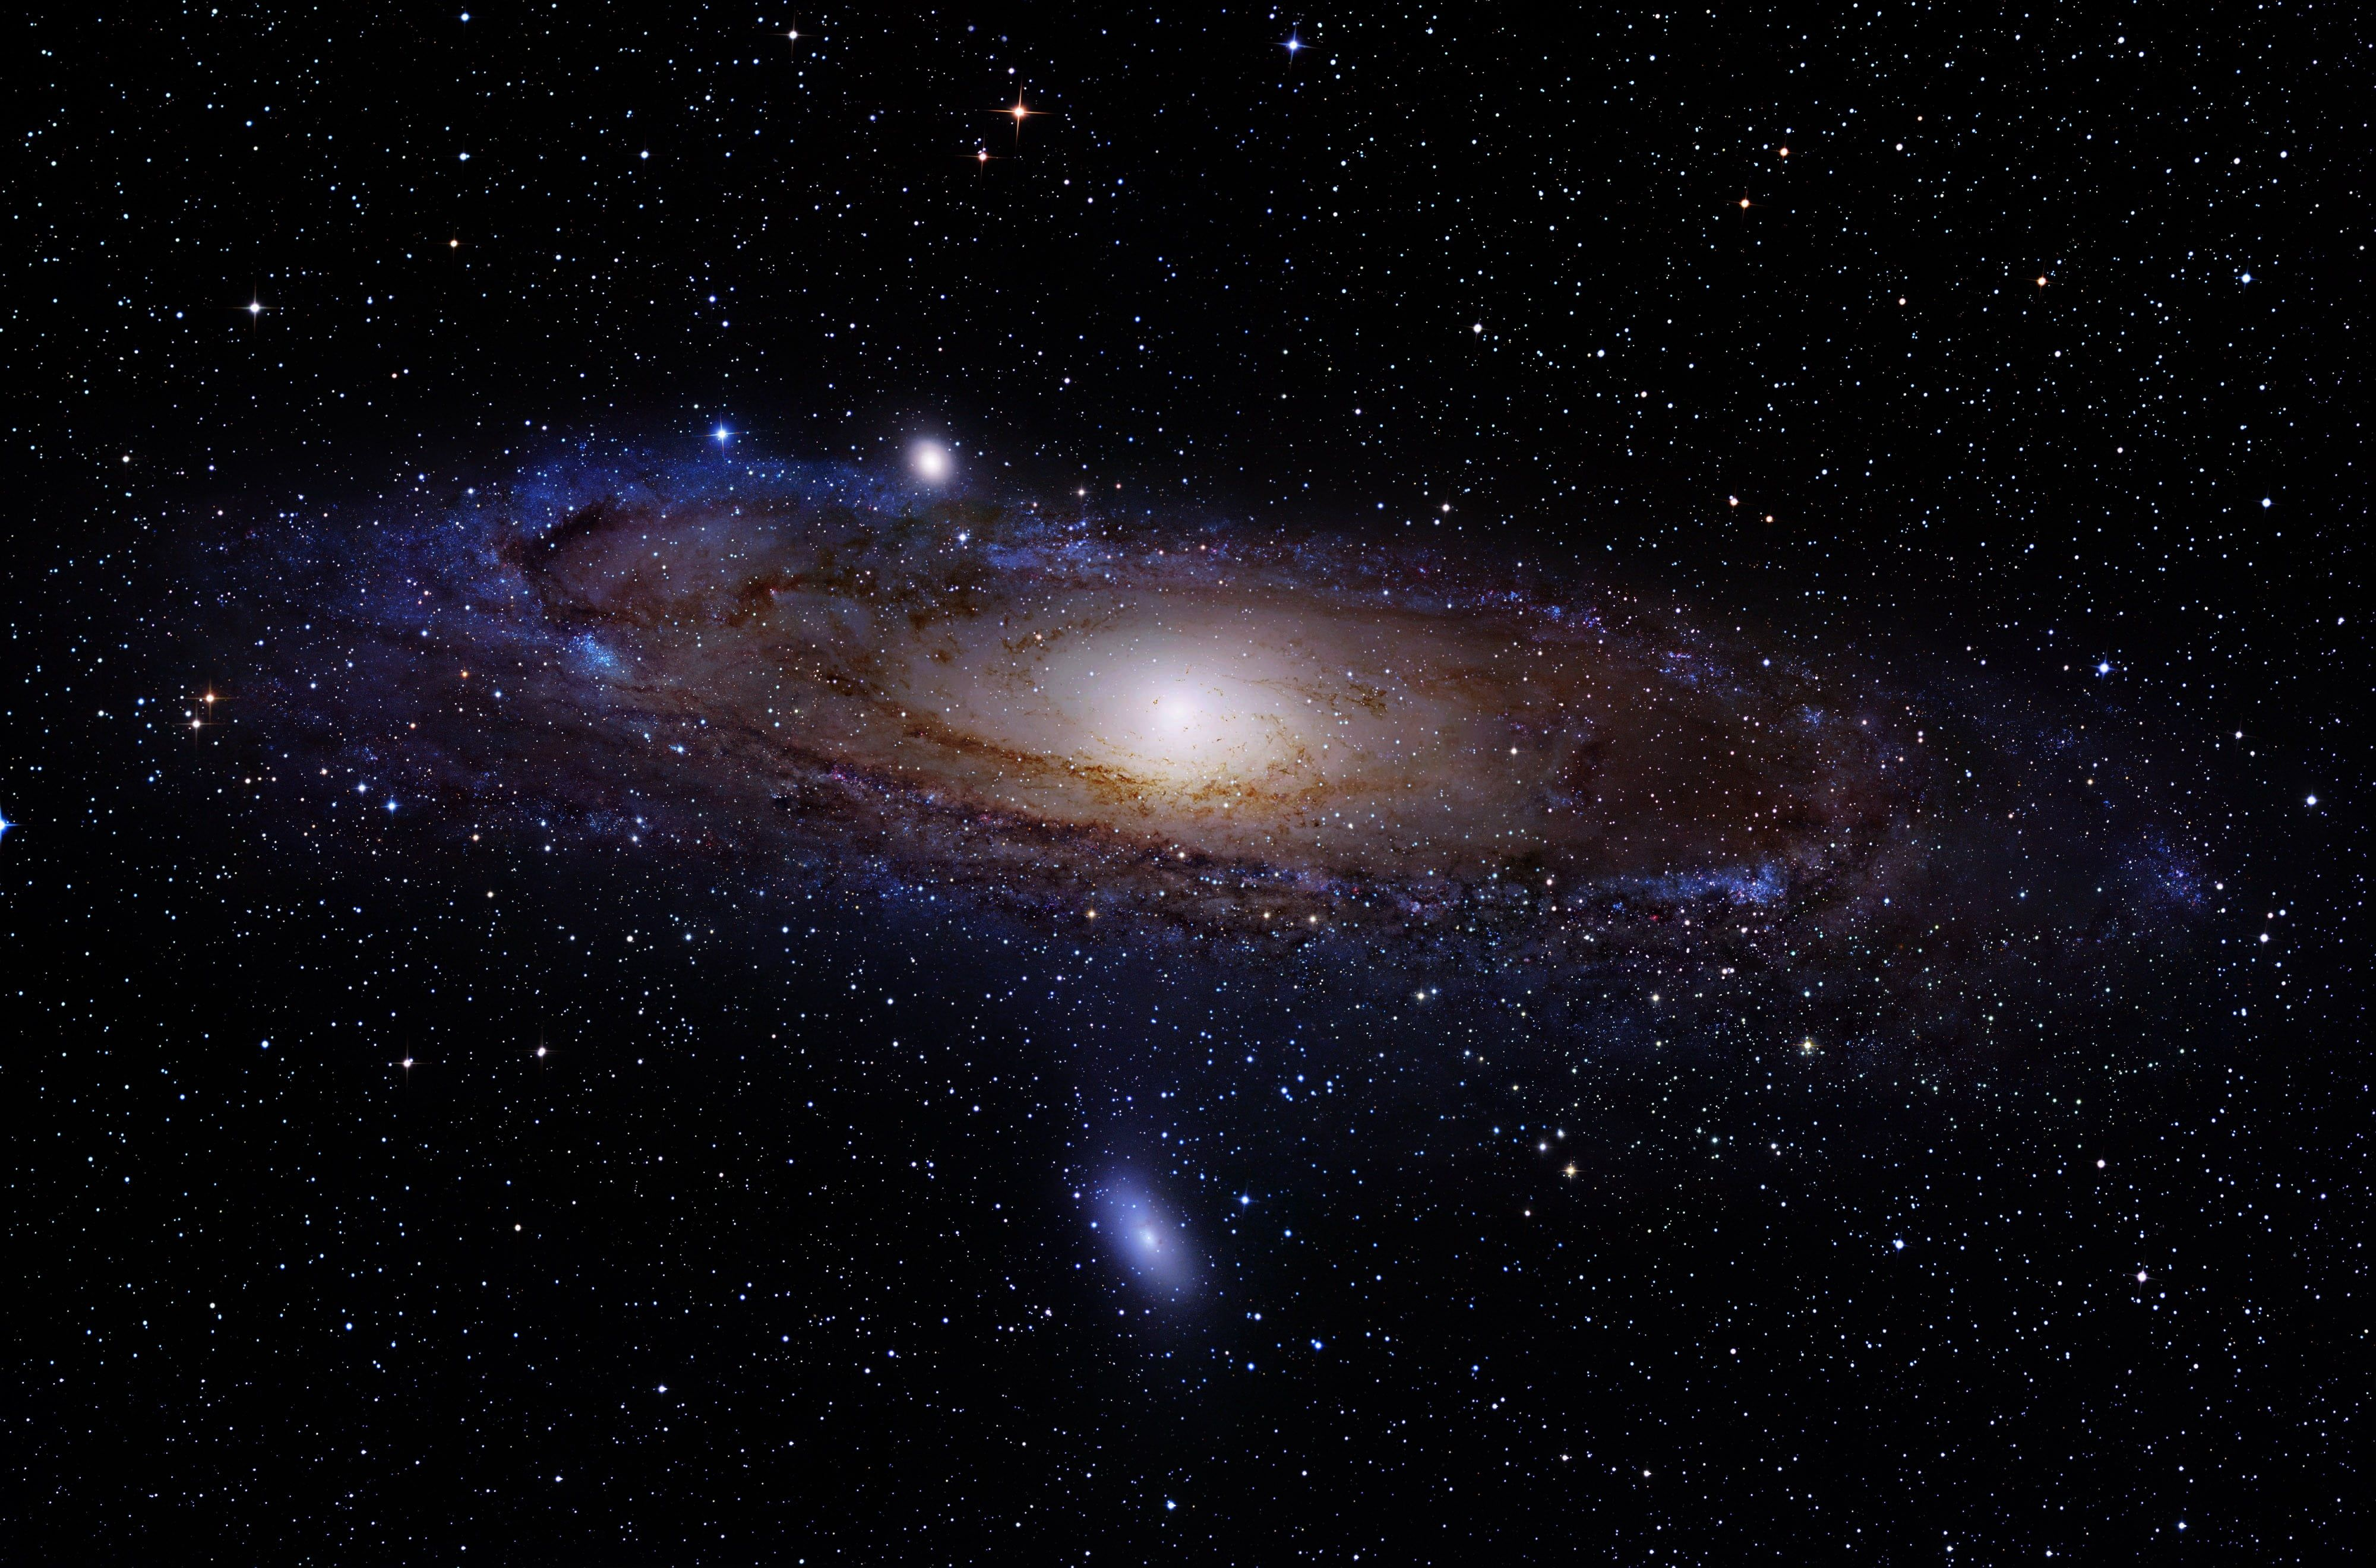 milky way Andromeda space galaxy Messier 31 Messier 110